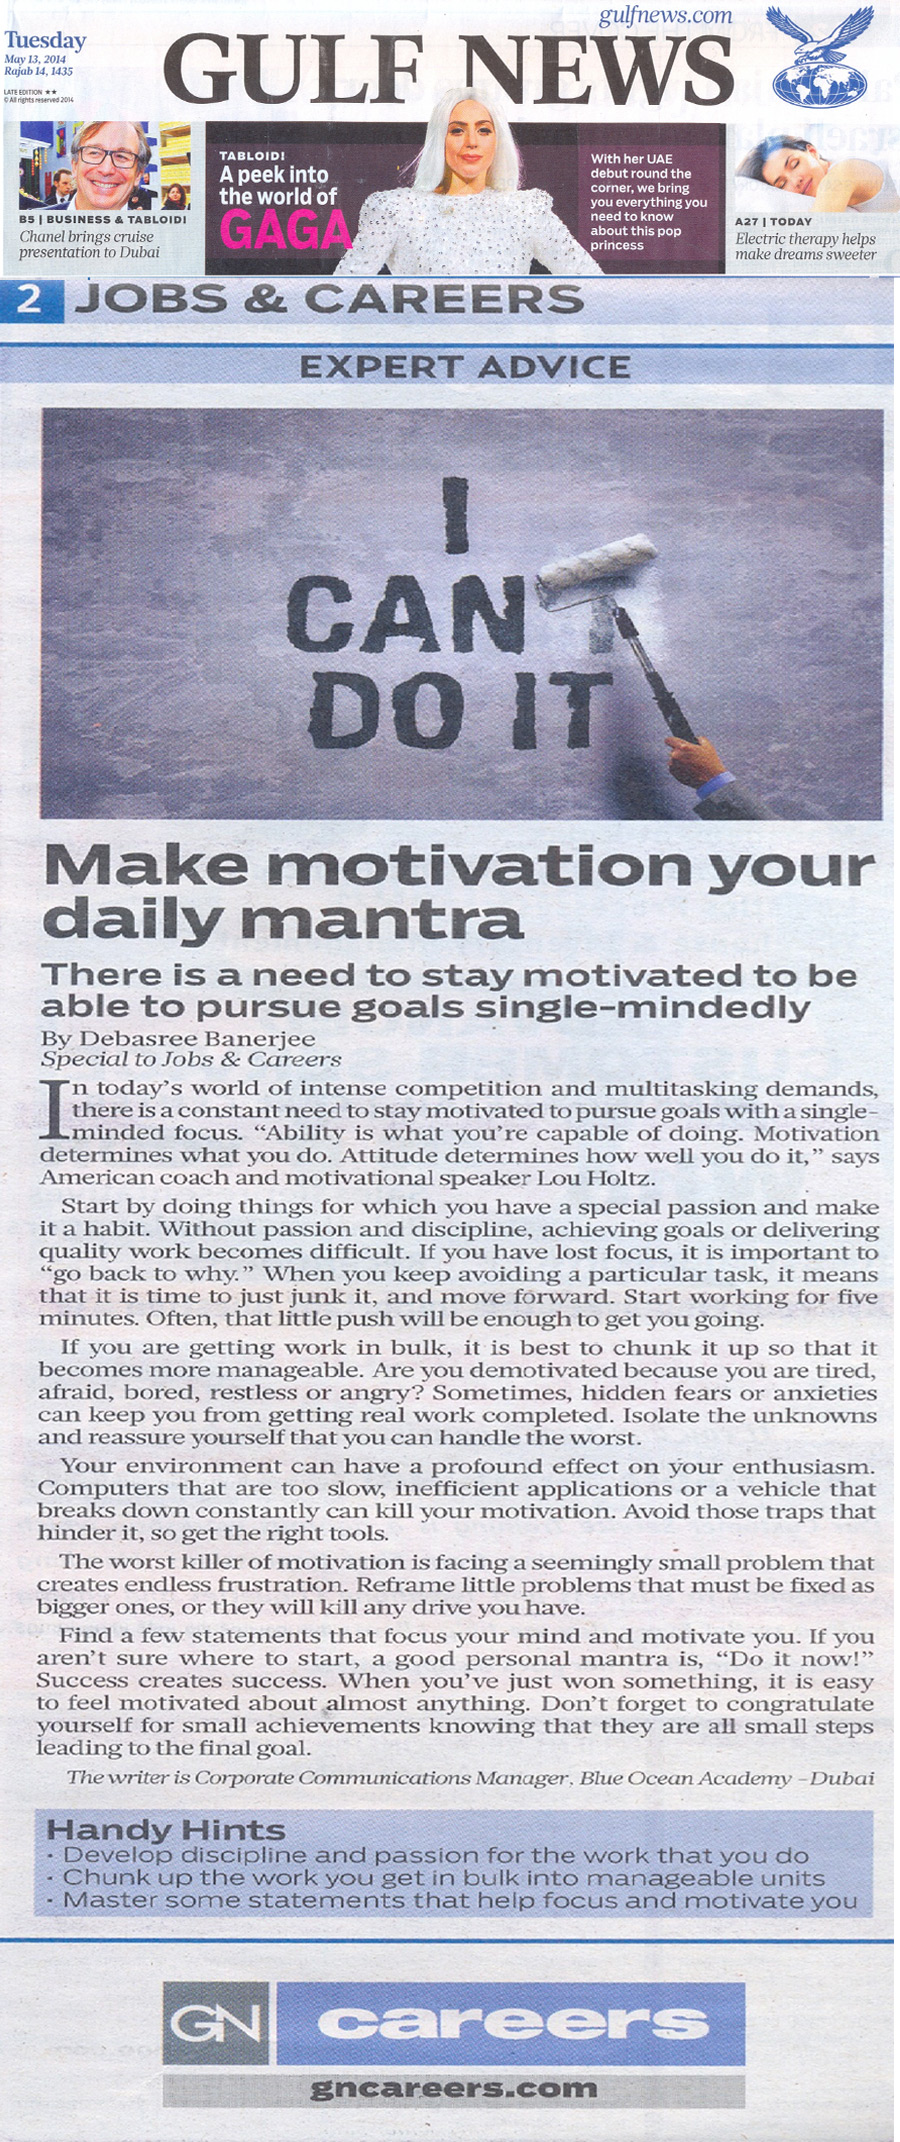 Make motivation your daily mantra